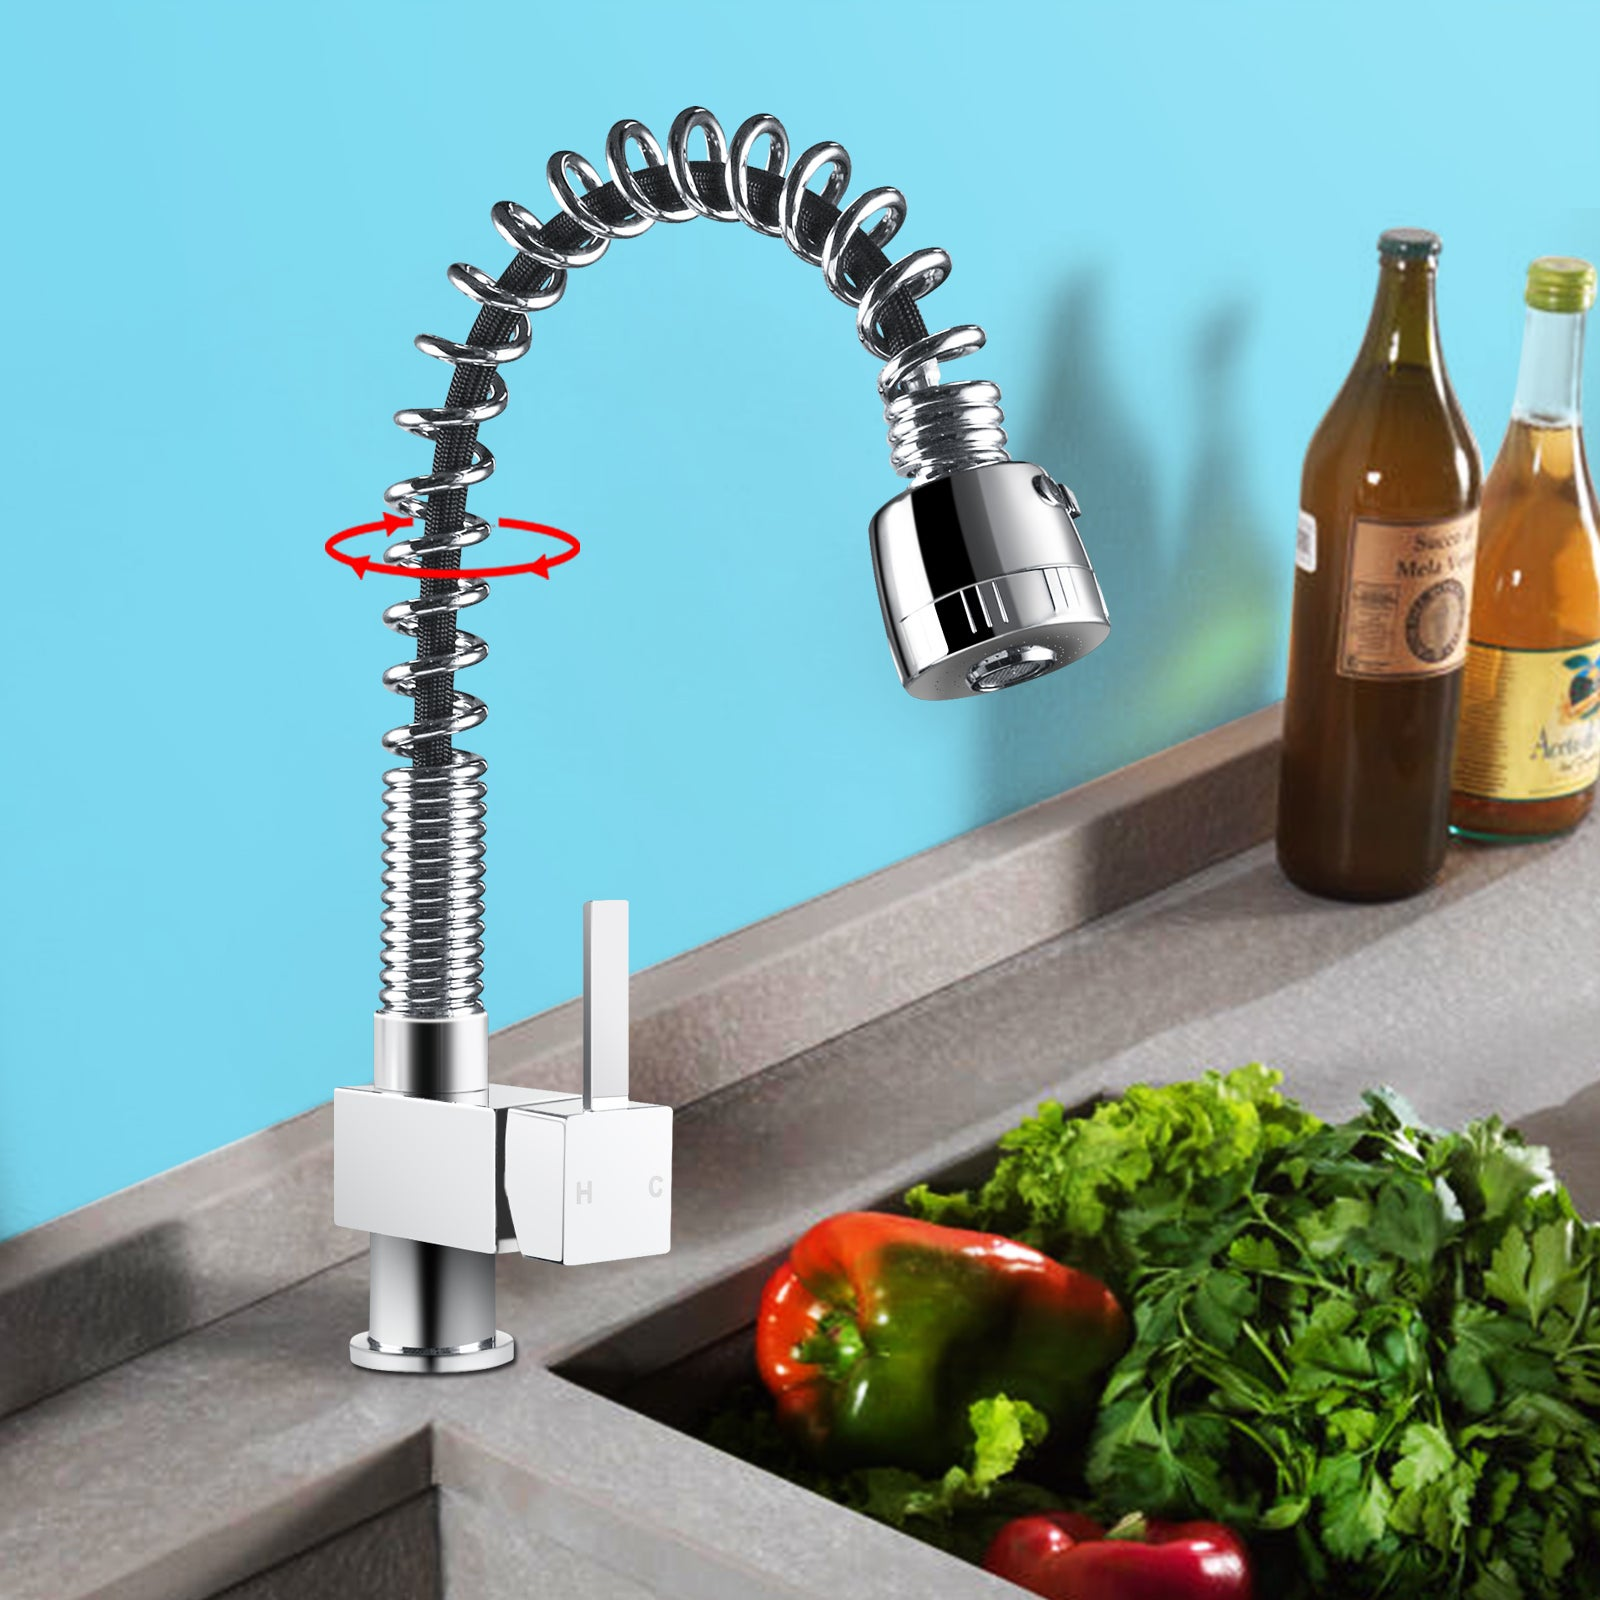 Kitchen Sink Mixer Tap Pull Out Shower Spray Vanity Faucets 360 degree spout Watermark & WELS